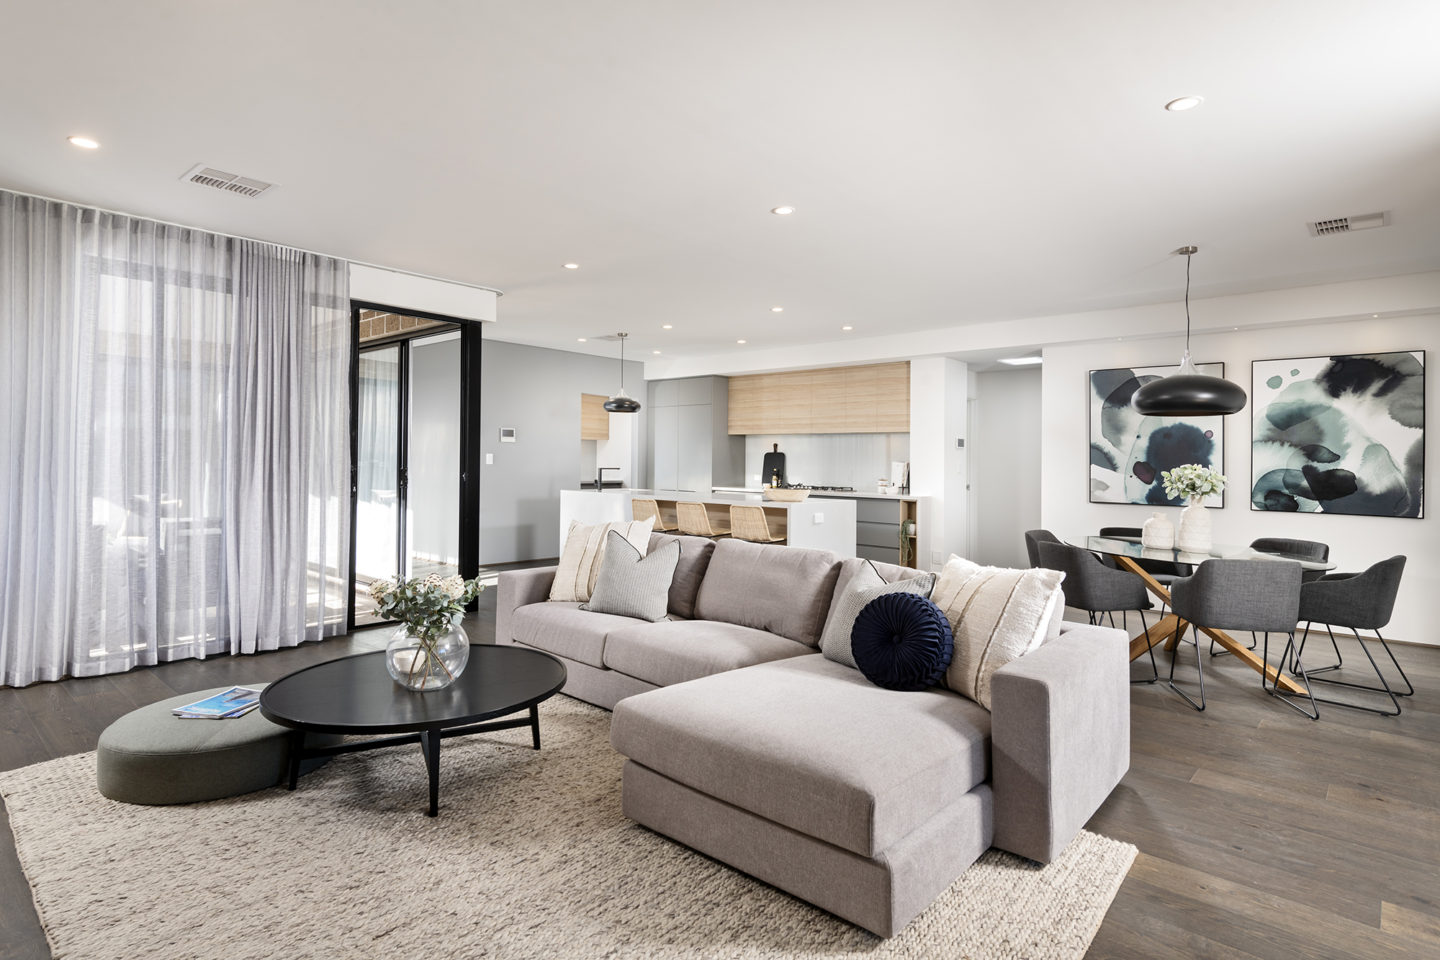 2019 Telethon Home by sister brand New Level Homes